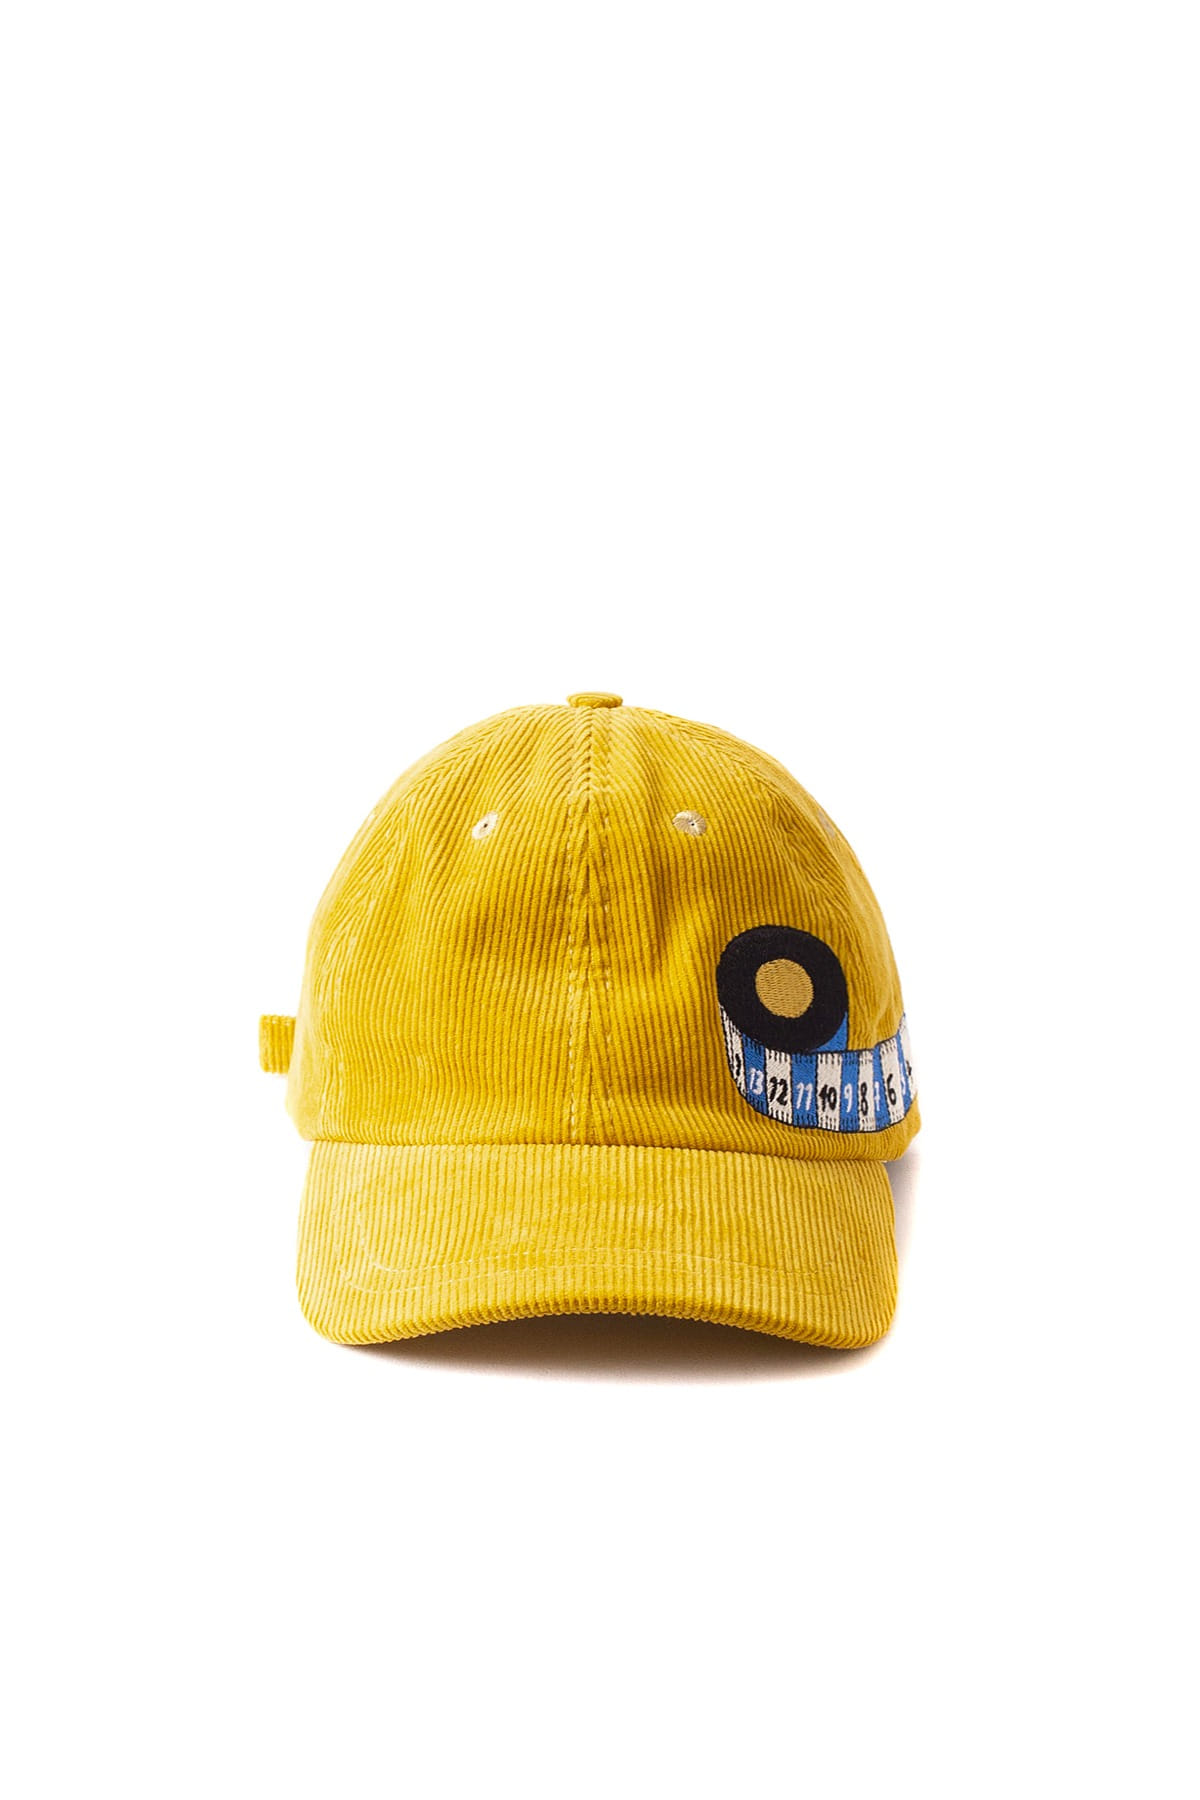 HENRIK VIBSKOV : Mesure Cap (Yellow)